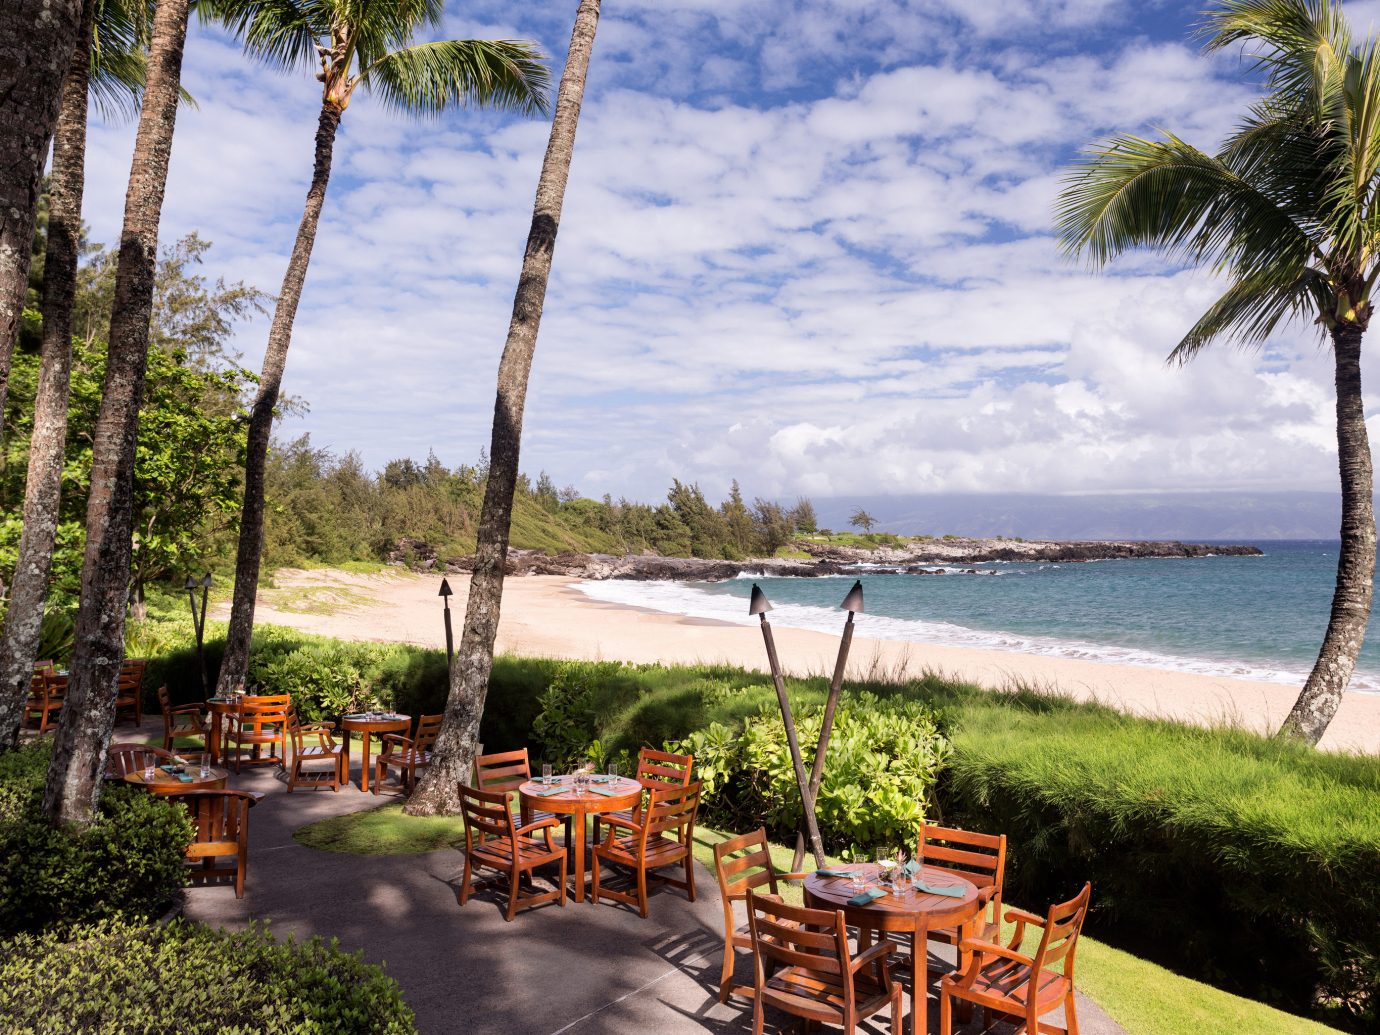 Boutique Hotels Hotels Luxury Travel outdoor tree water grass sky body of water vacation Beach River estate palm arecales Lake Sea plant overlooking lined shore